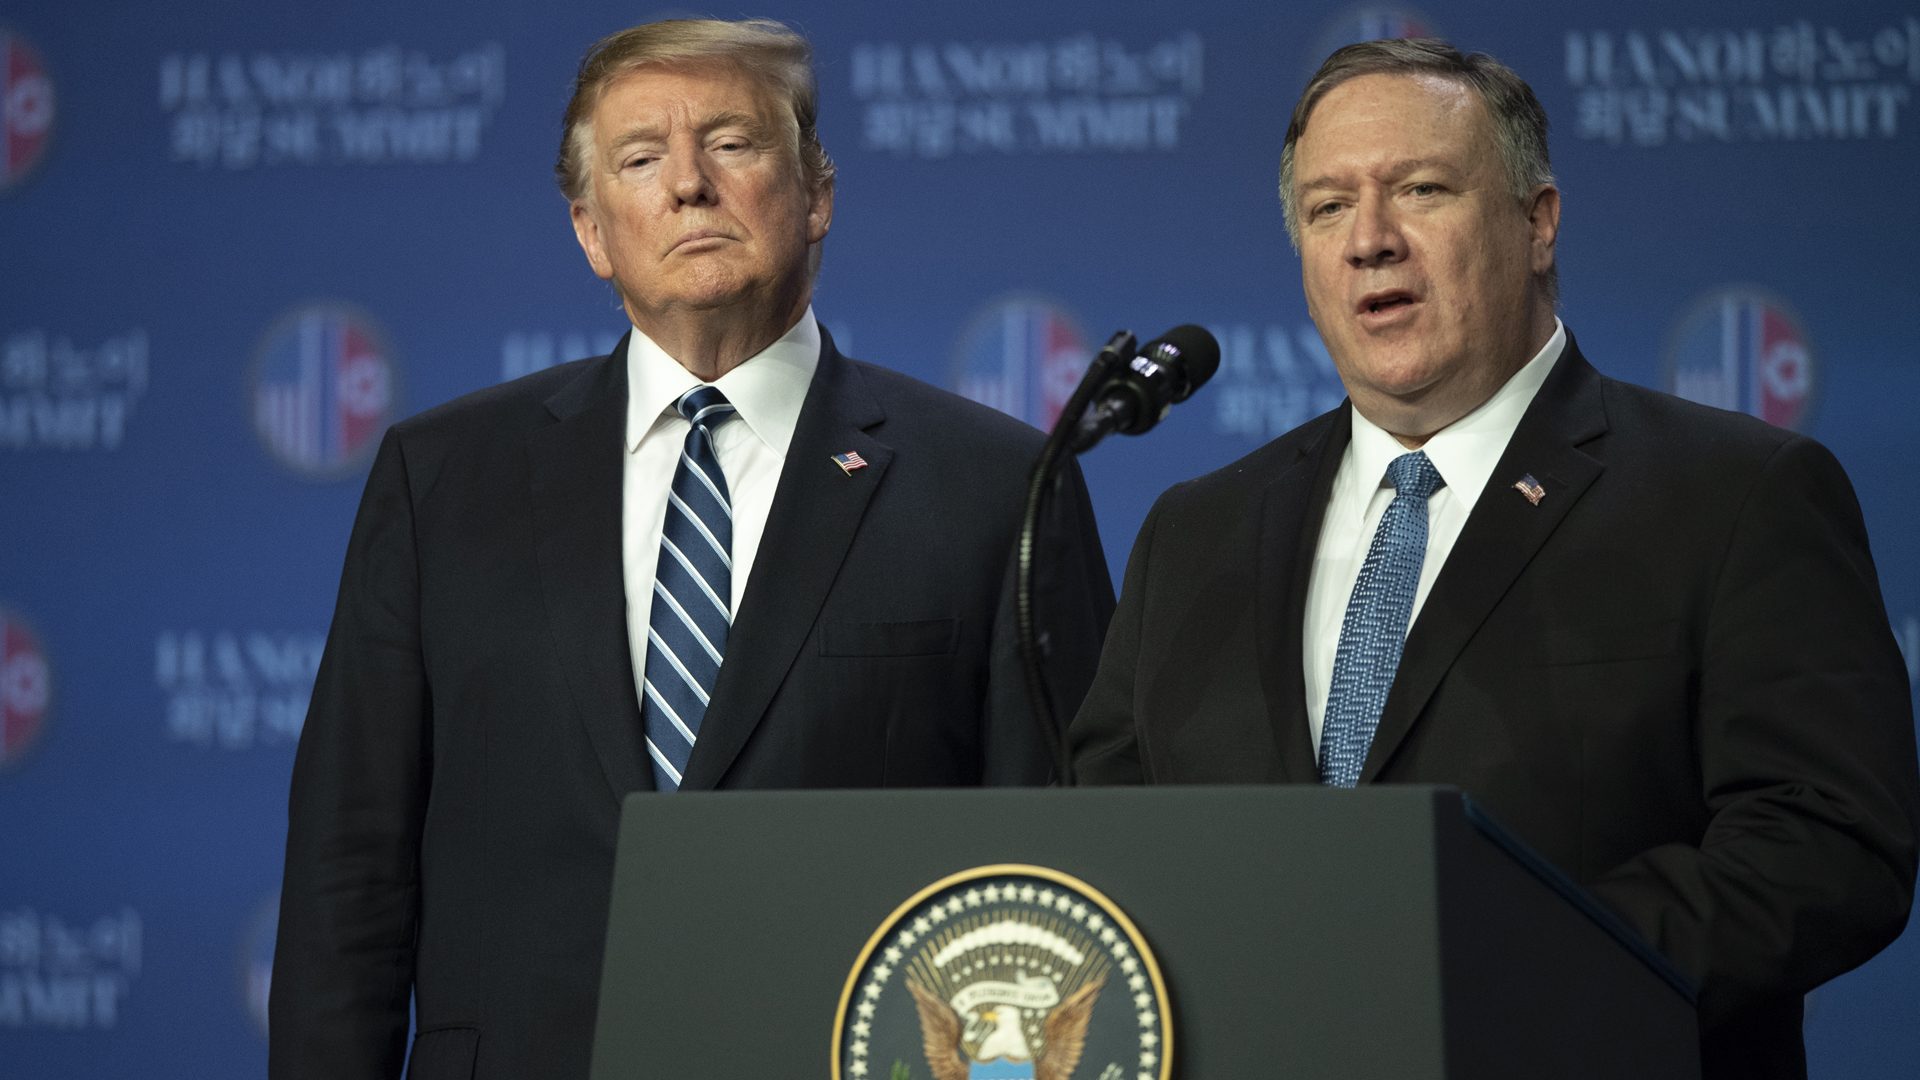 Secretary of State Mike Pompeo speaks at a news conference while President Donald Trump looks on following his second summit meeting with North Korean leader Kim Jong-un on Feb. 28, 2019 in Hanoi, Vietnam. (Credit: Tuan Mark/Getty Images)